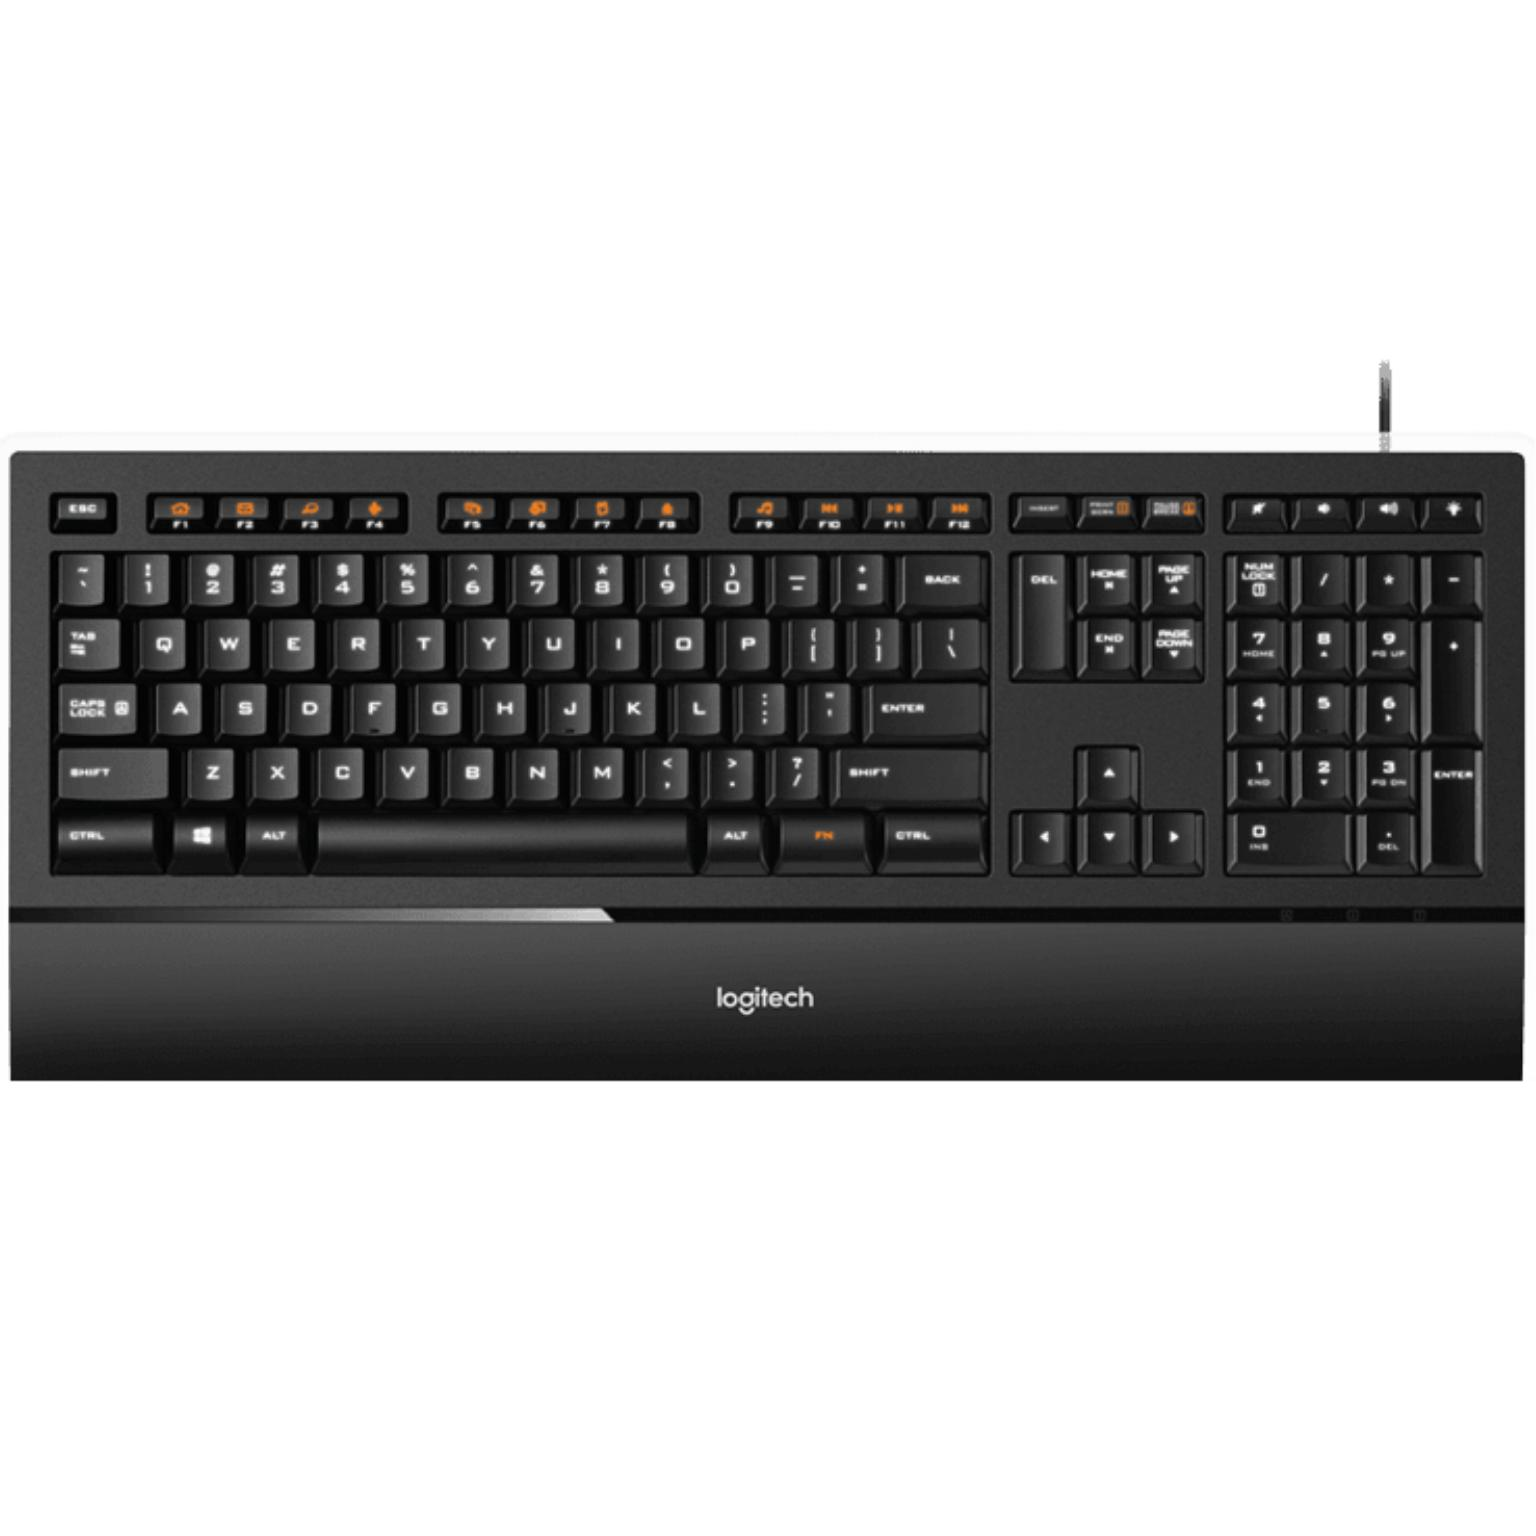 Illuminated Keyboard K740 Logitech